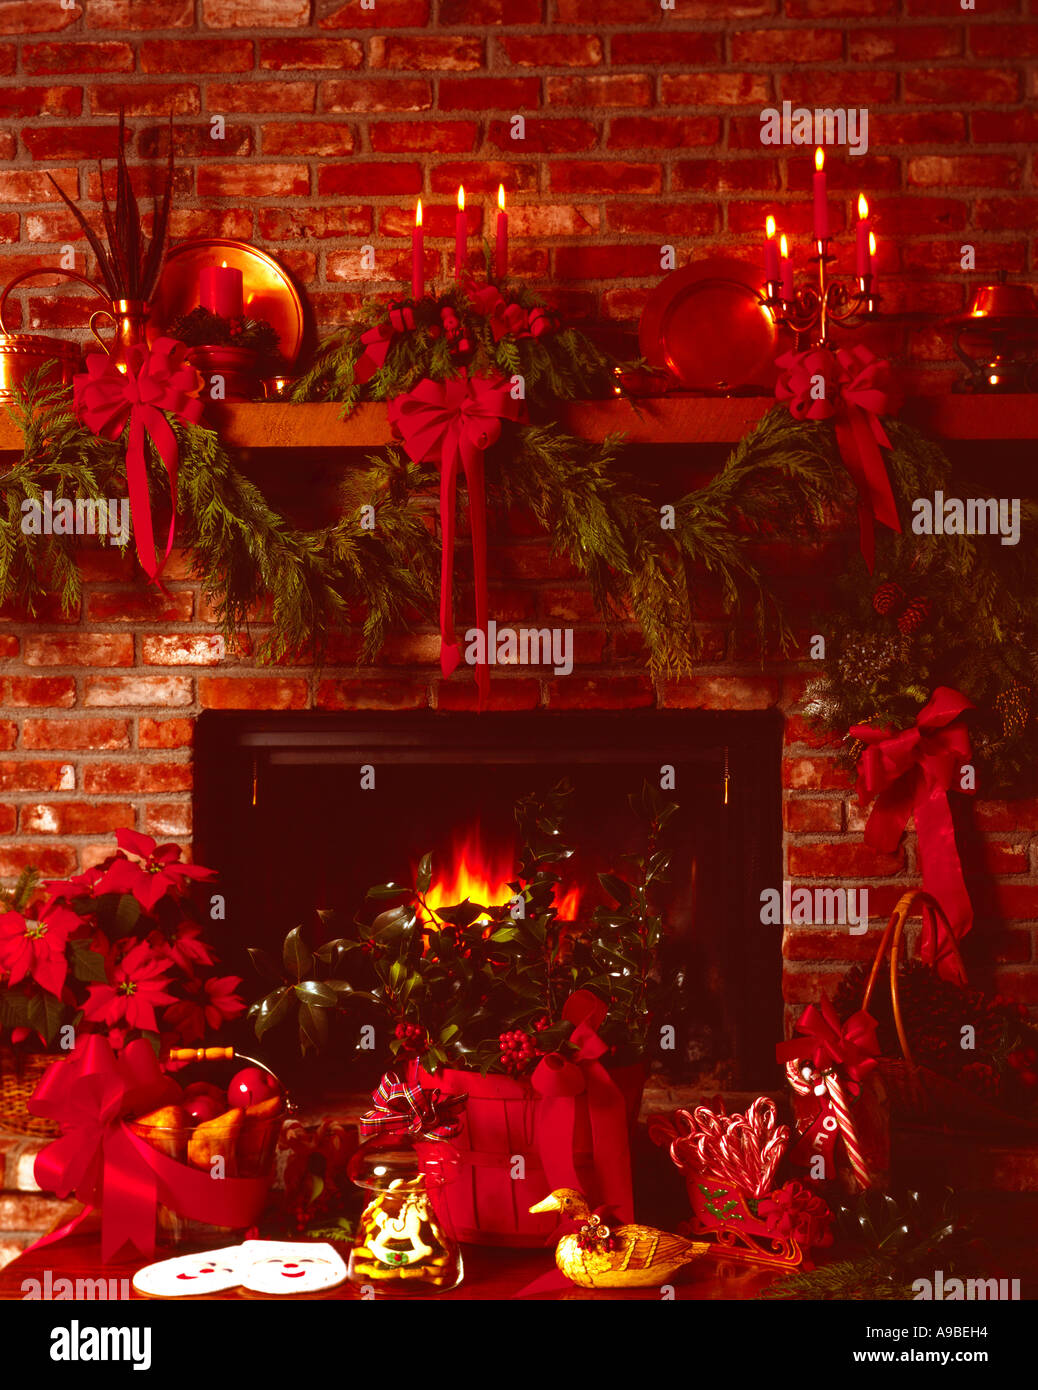 christmas fireplace still with blazing hearth fruit baskets